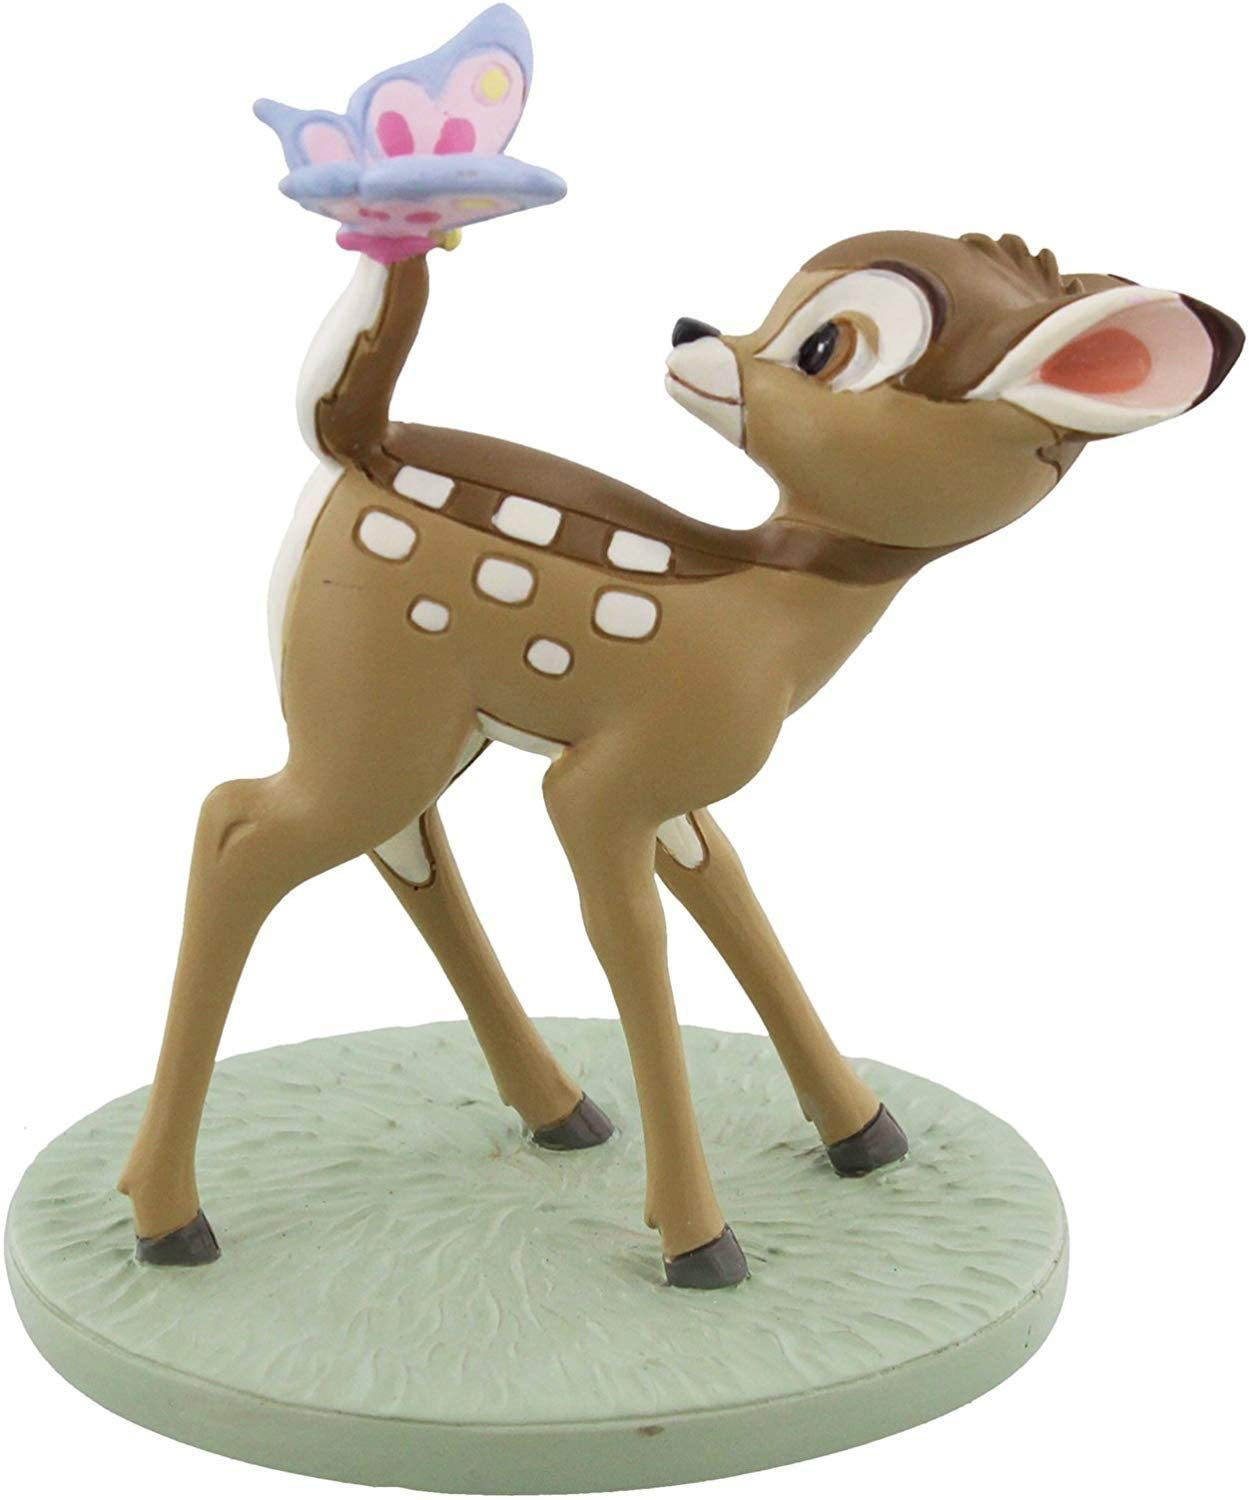 Disney Magical Moments Bambi and Butterfly Figurine Ornament Sculpture Dreams and Wishes